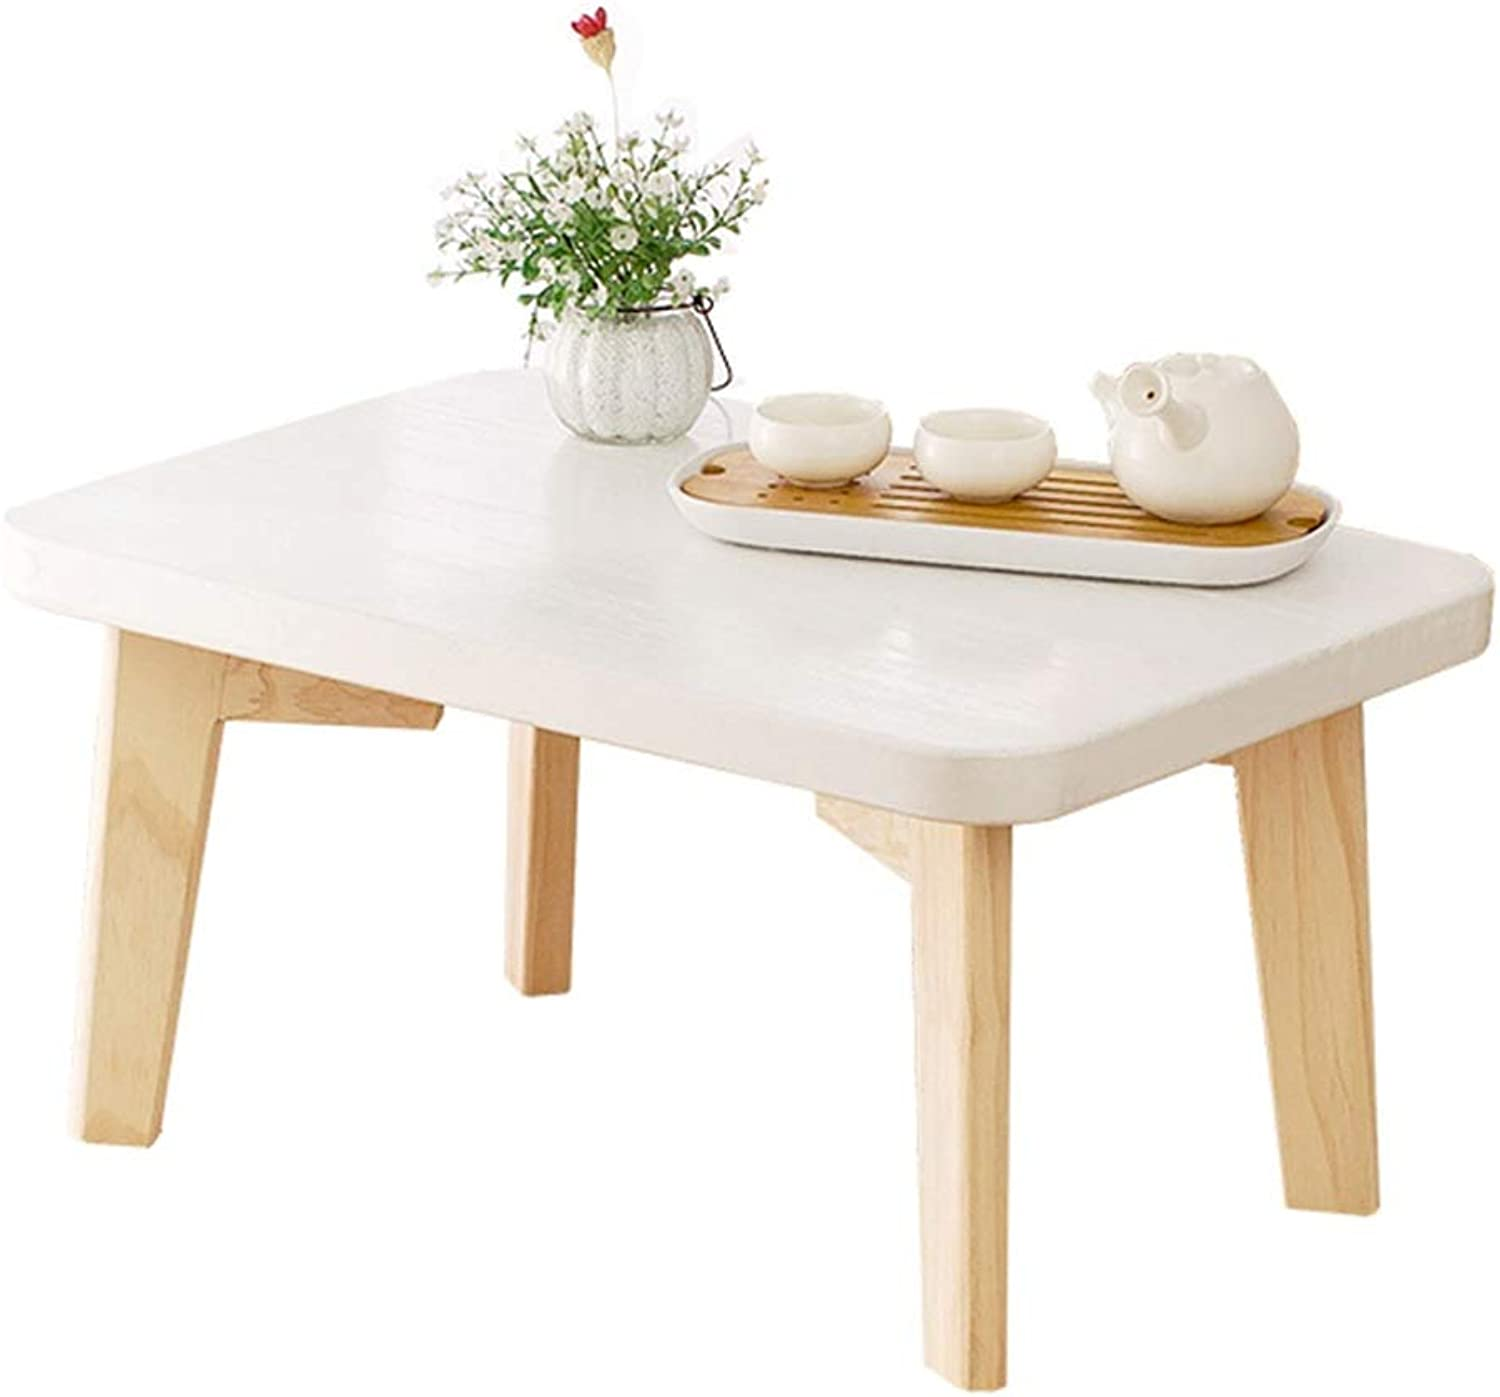 Solid Wood Small Coffee Table Living Room Bay Window Tatami Simple Short Side Table White (Size   50×40×30cm)